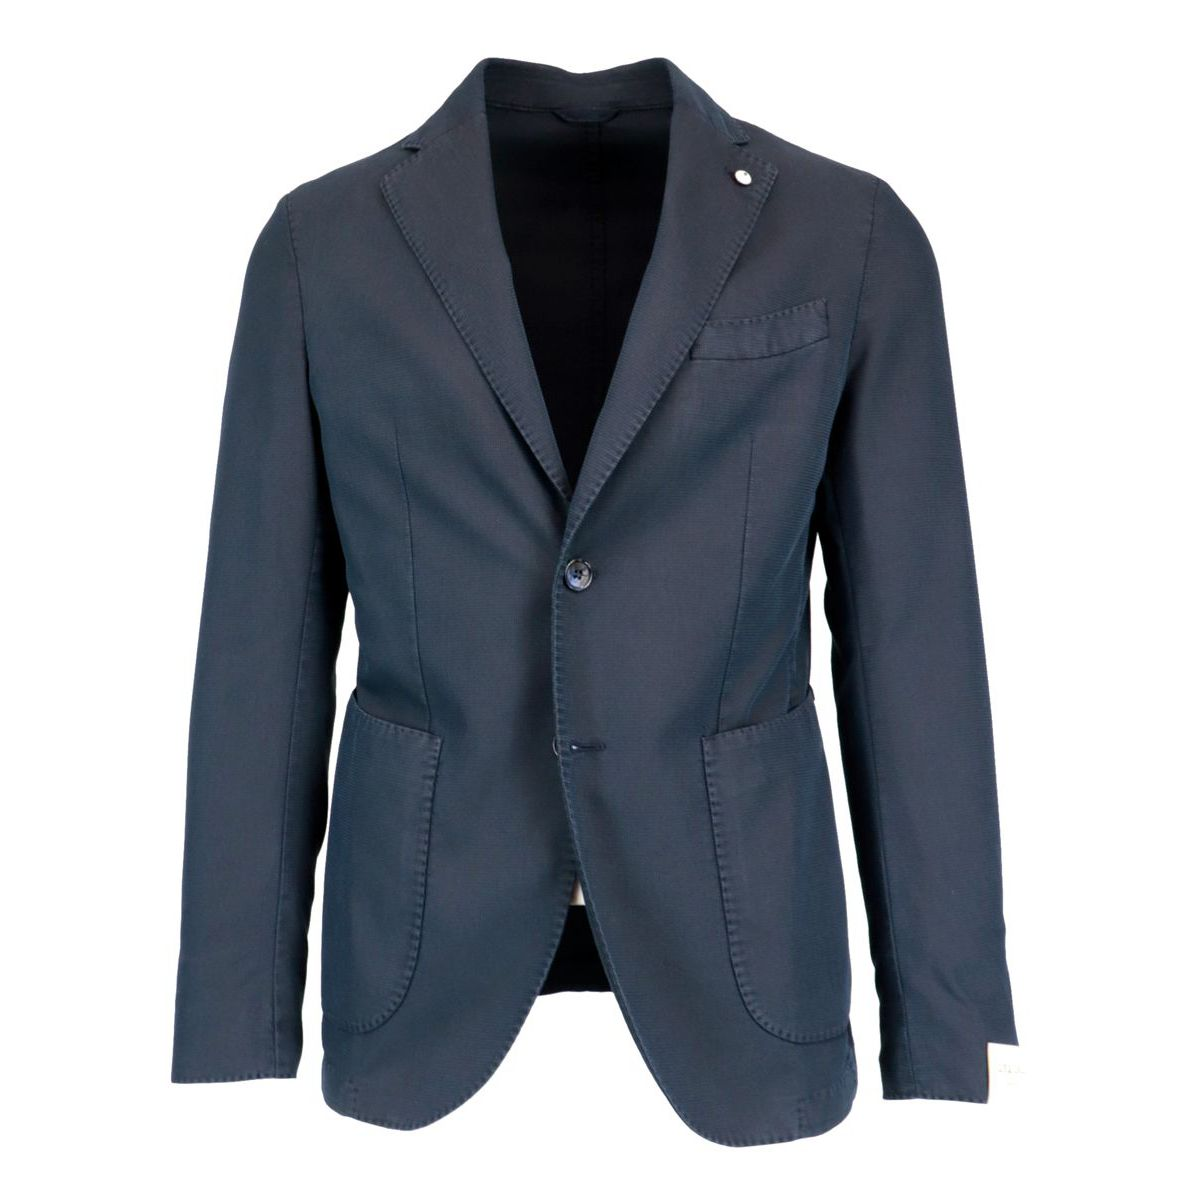 Two-button slim jacket in textured cotton blend Blue L.B.M. 1911